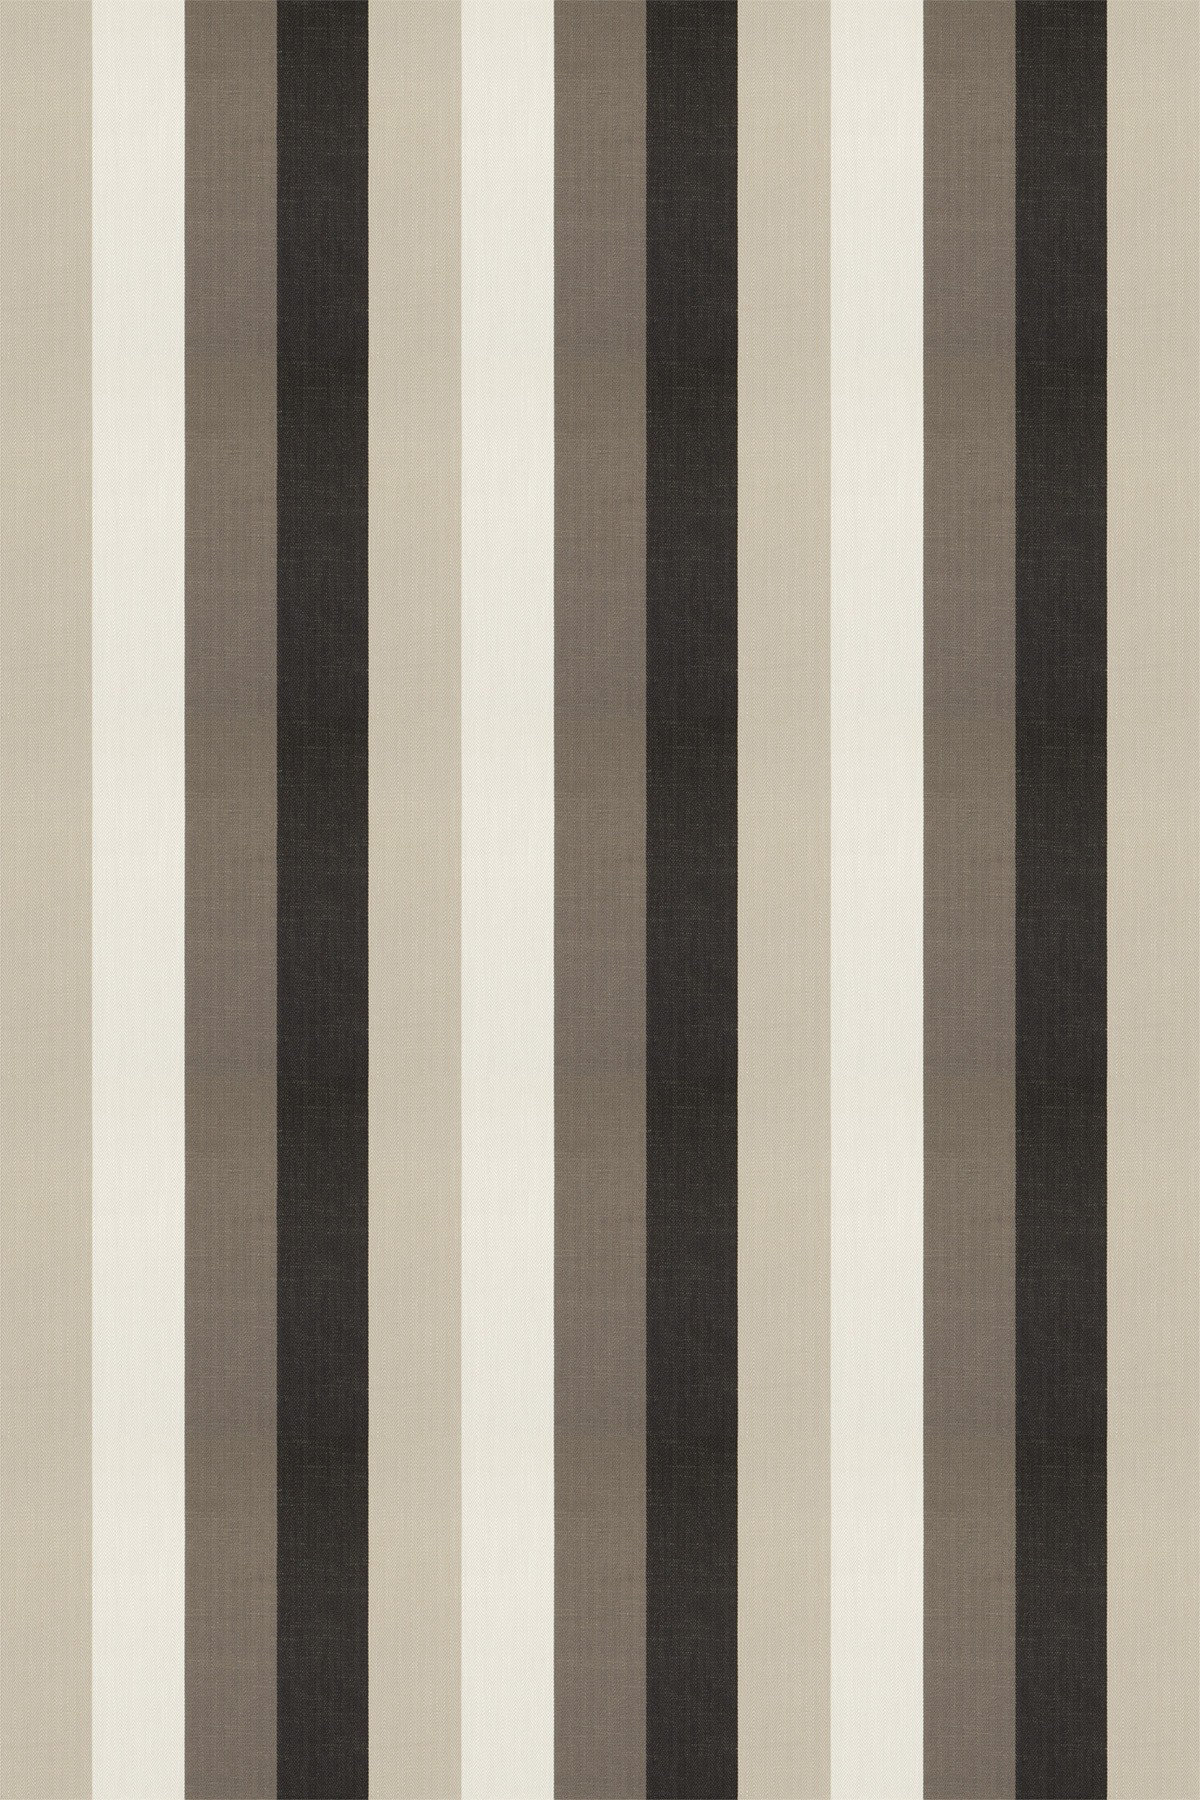 Image of Clarke & Clarke Fabric Lawn Stripe Charcoal, F0484/02